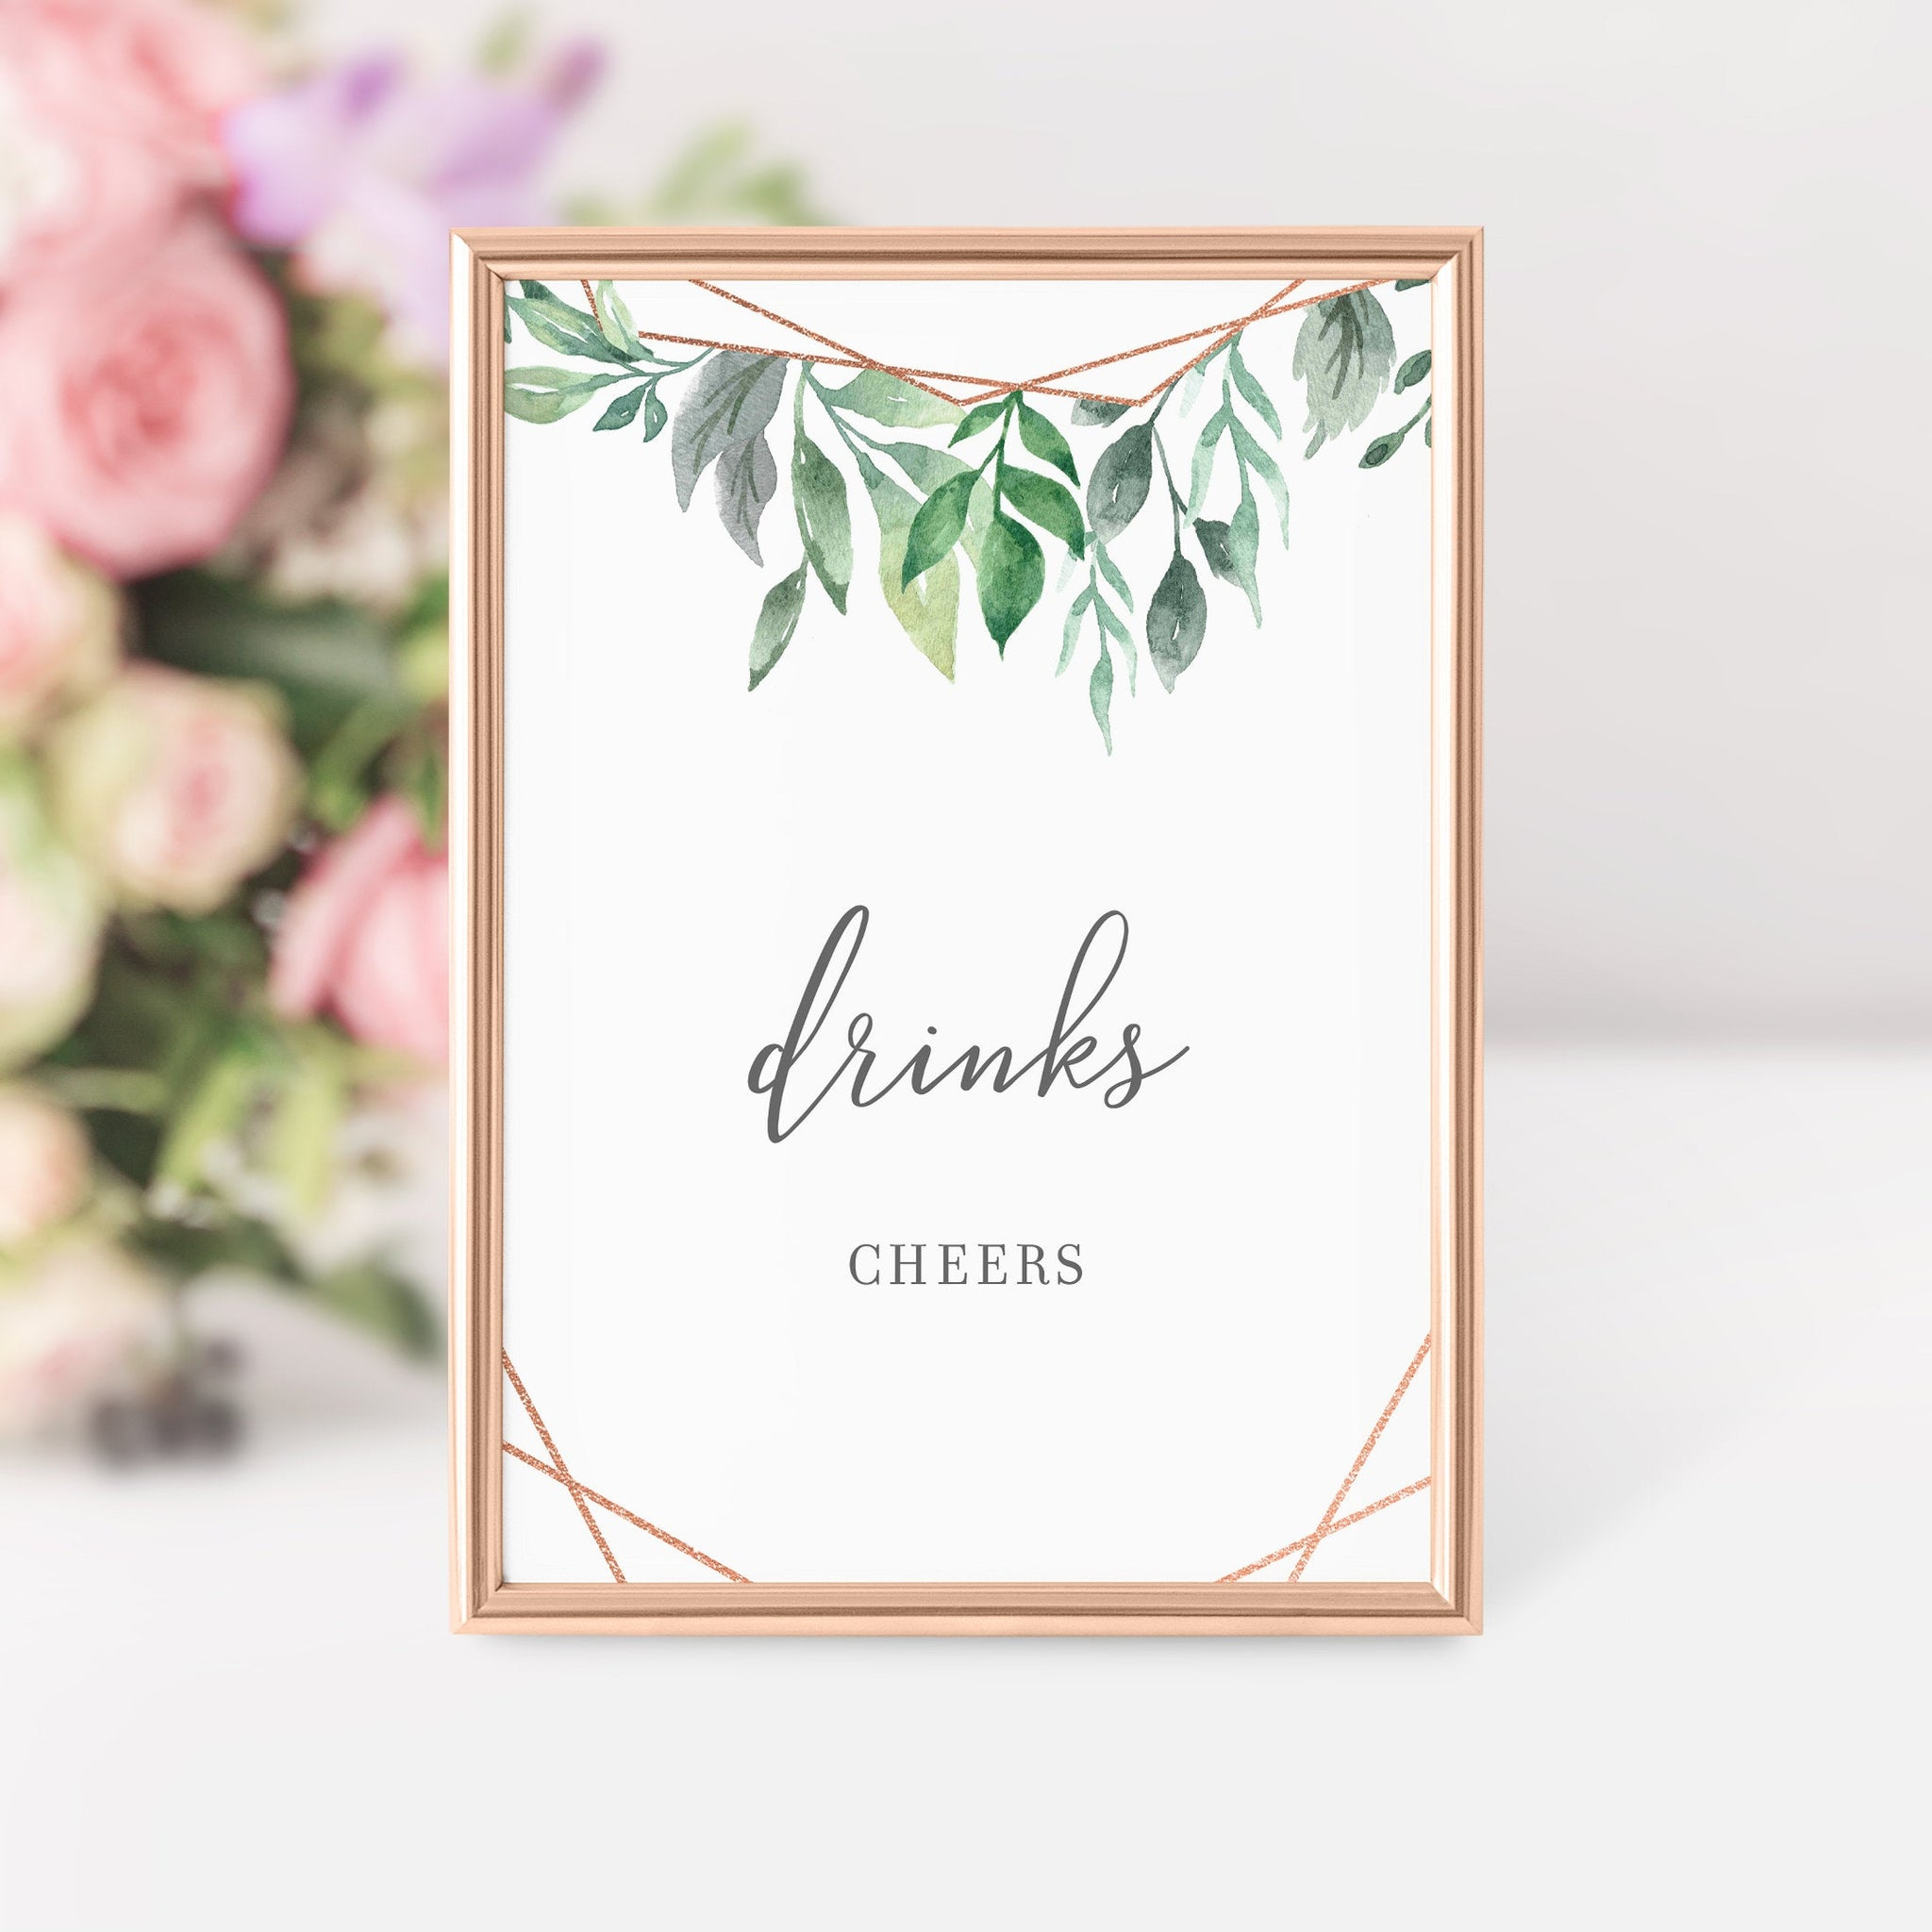 Geometric Rose Gold Greenery Printable Drinks Sign INSTANT DOWNLOAD, Bridal Shower, Baby Shower, Wedding Decorations and Supplies - GFRG100 - @PlumPolkaDot